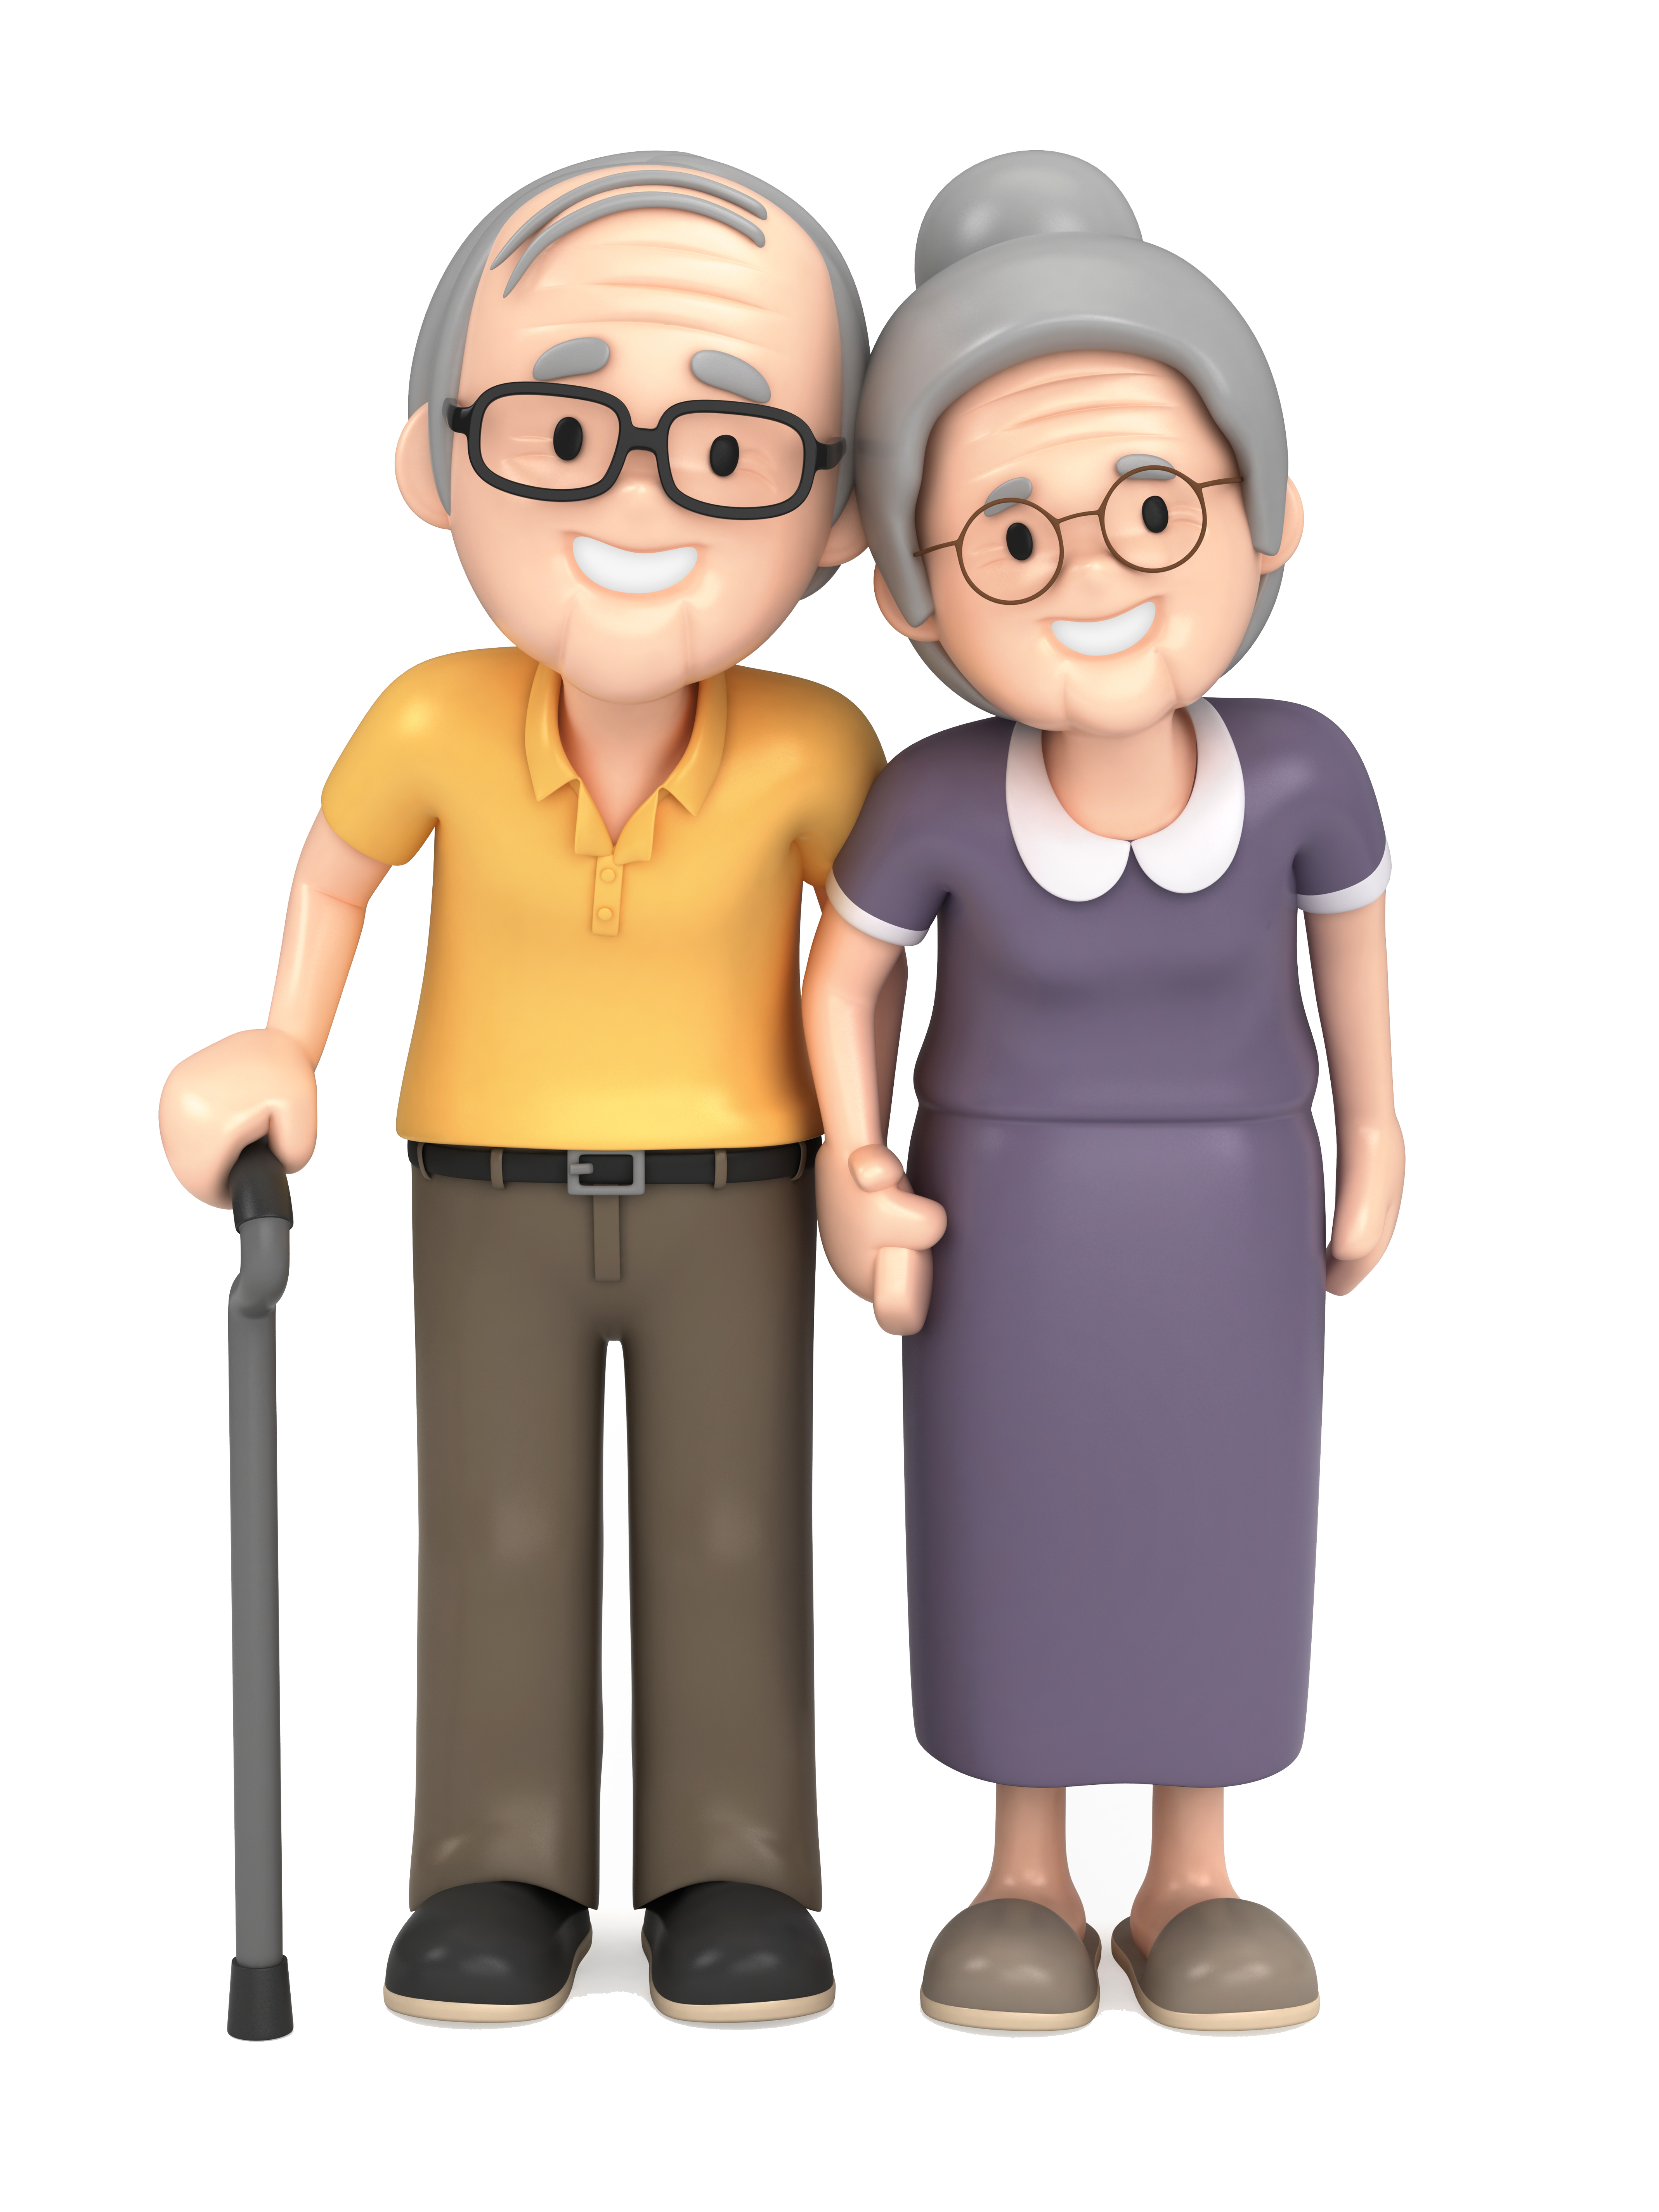 Filial piety illustration image_picture free download 400159295_lovepik.com